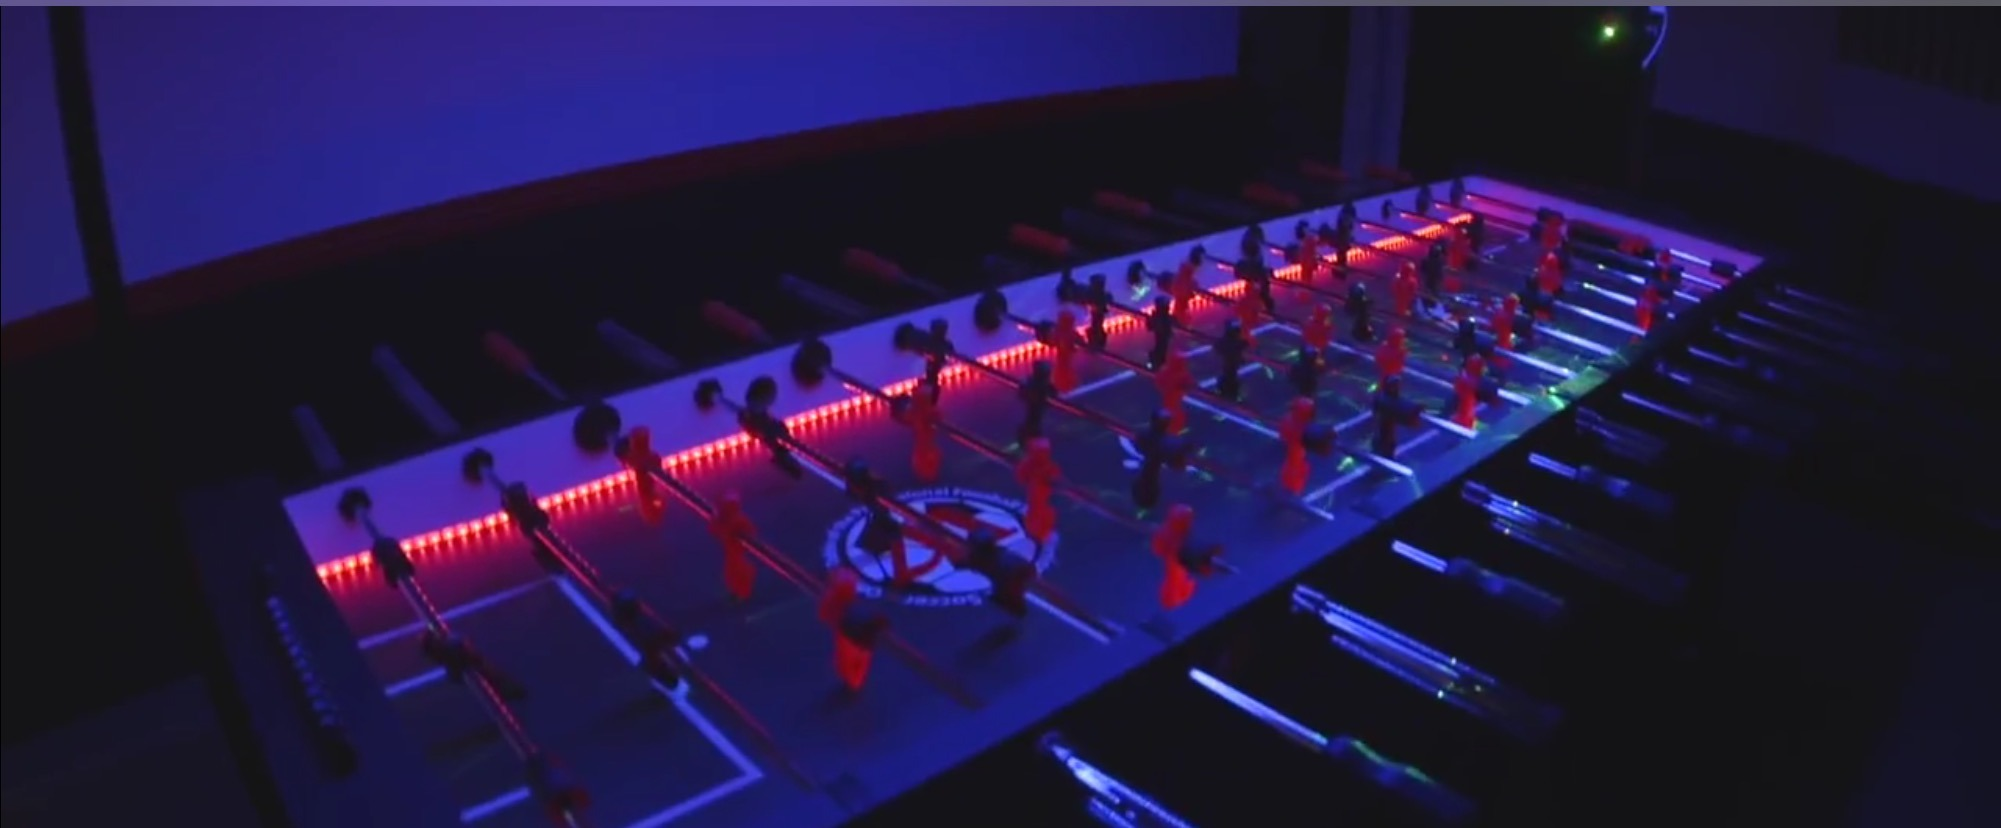 LED FOOSBALL TABLE RENTAL Lets Party - Foosball table light